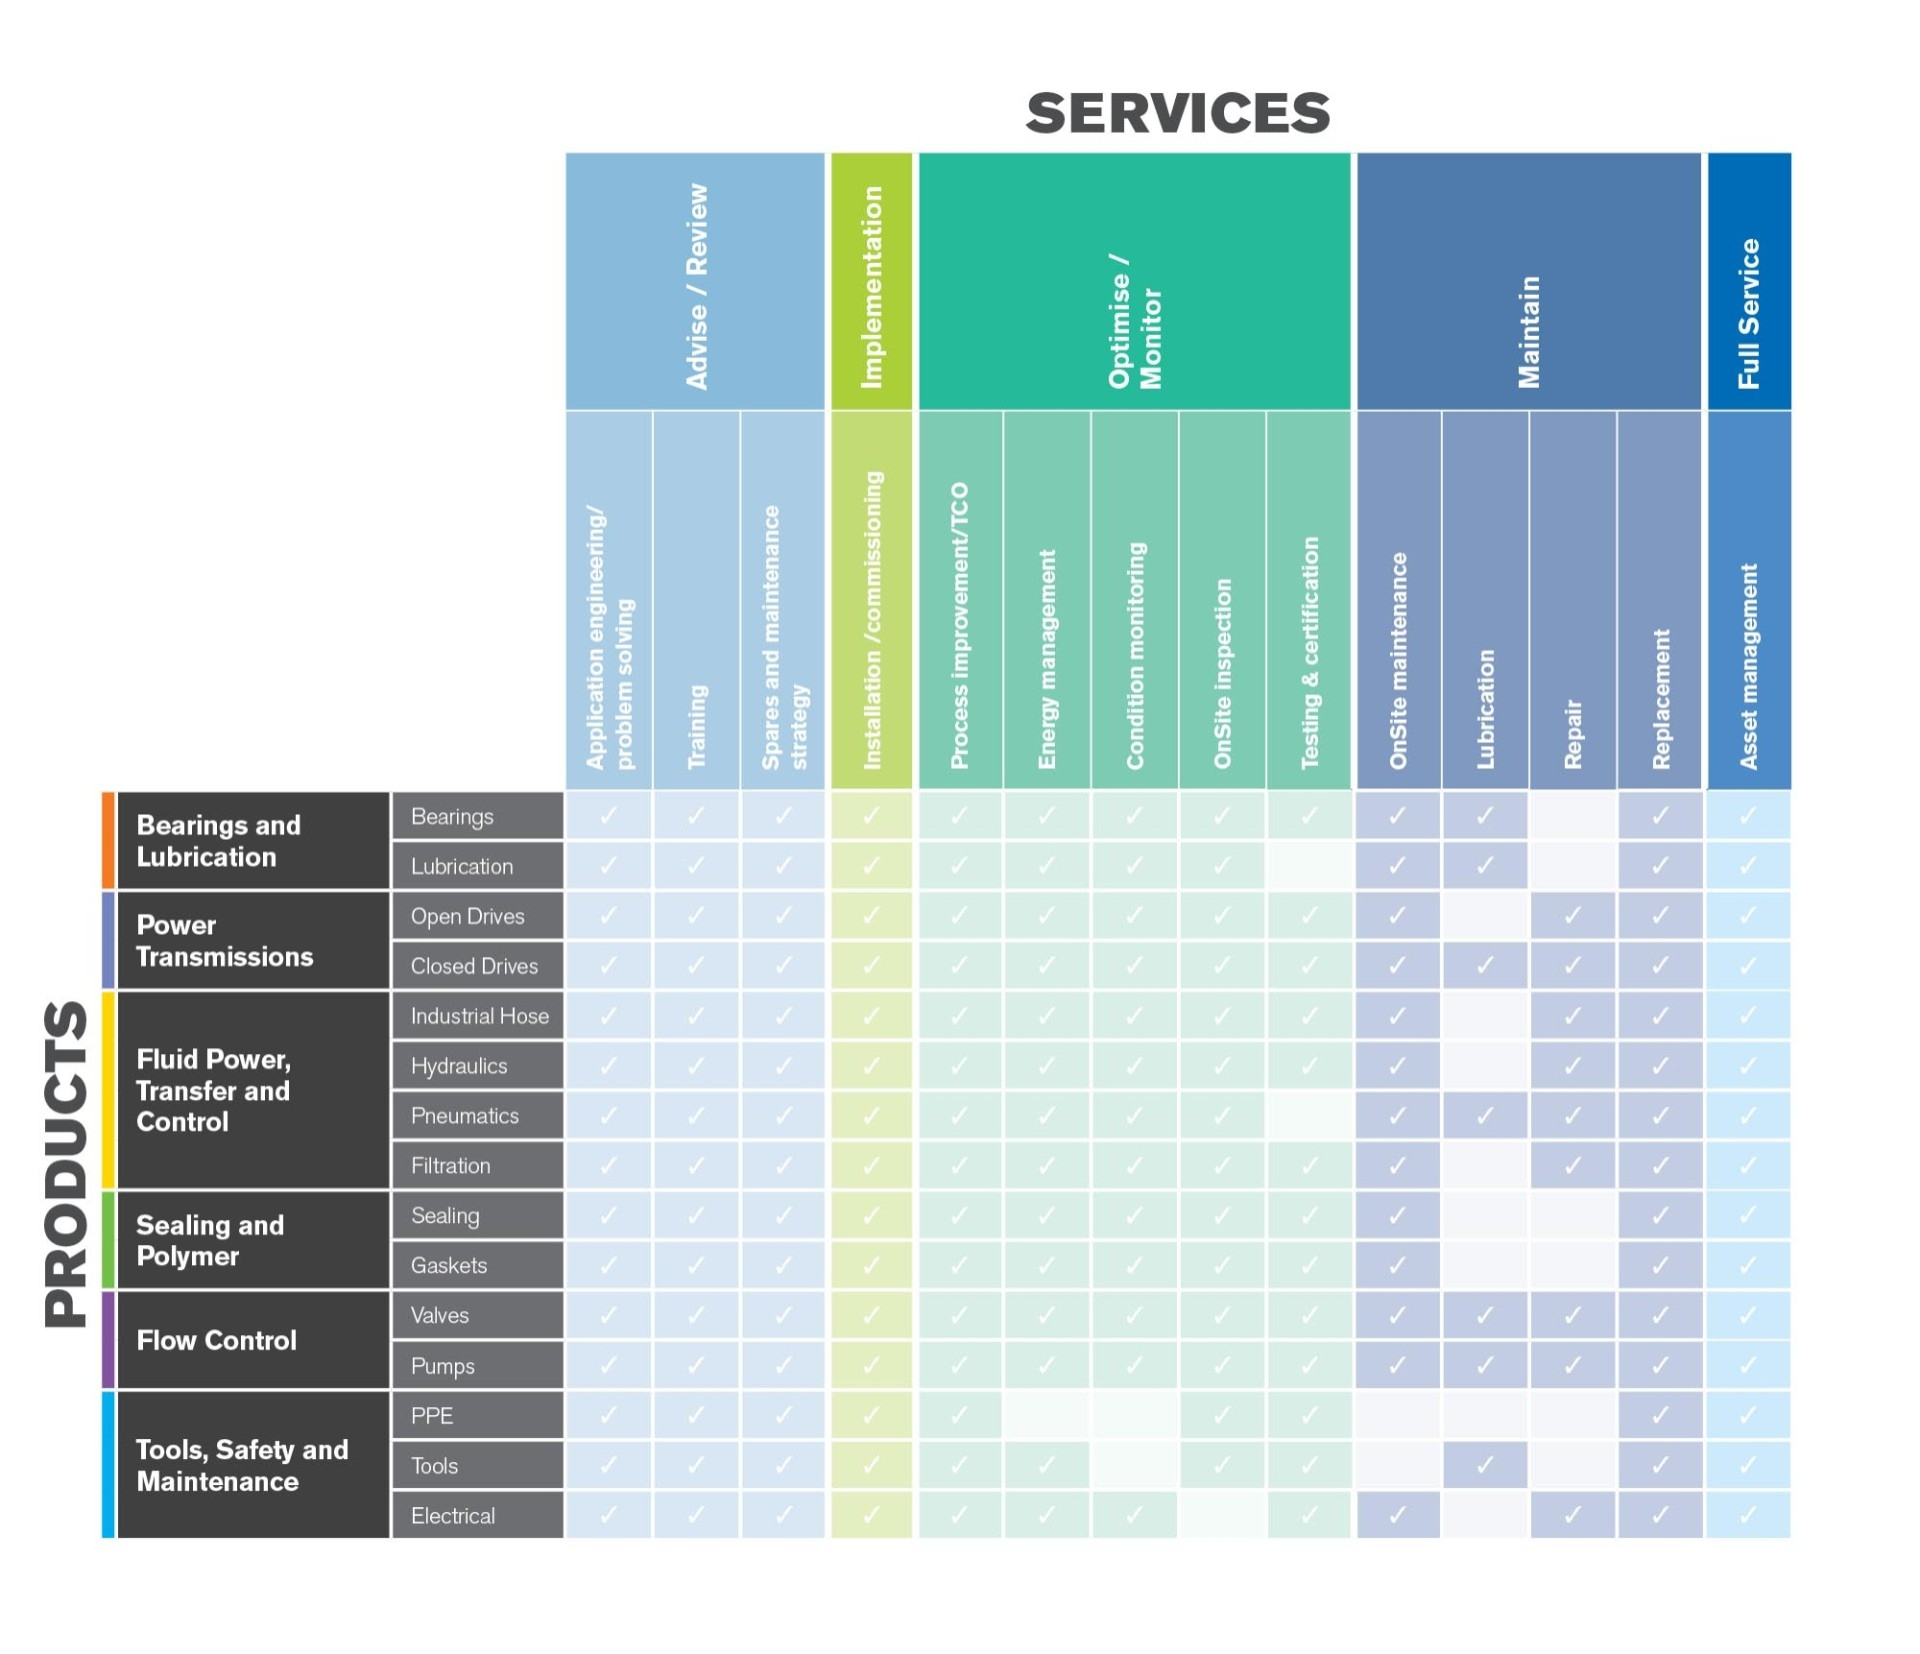 Product and Service Matrix